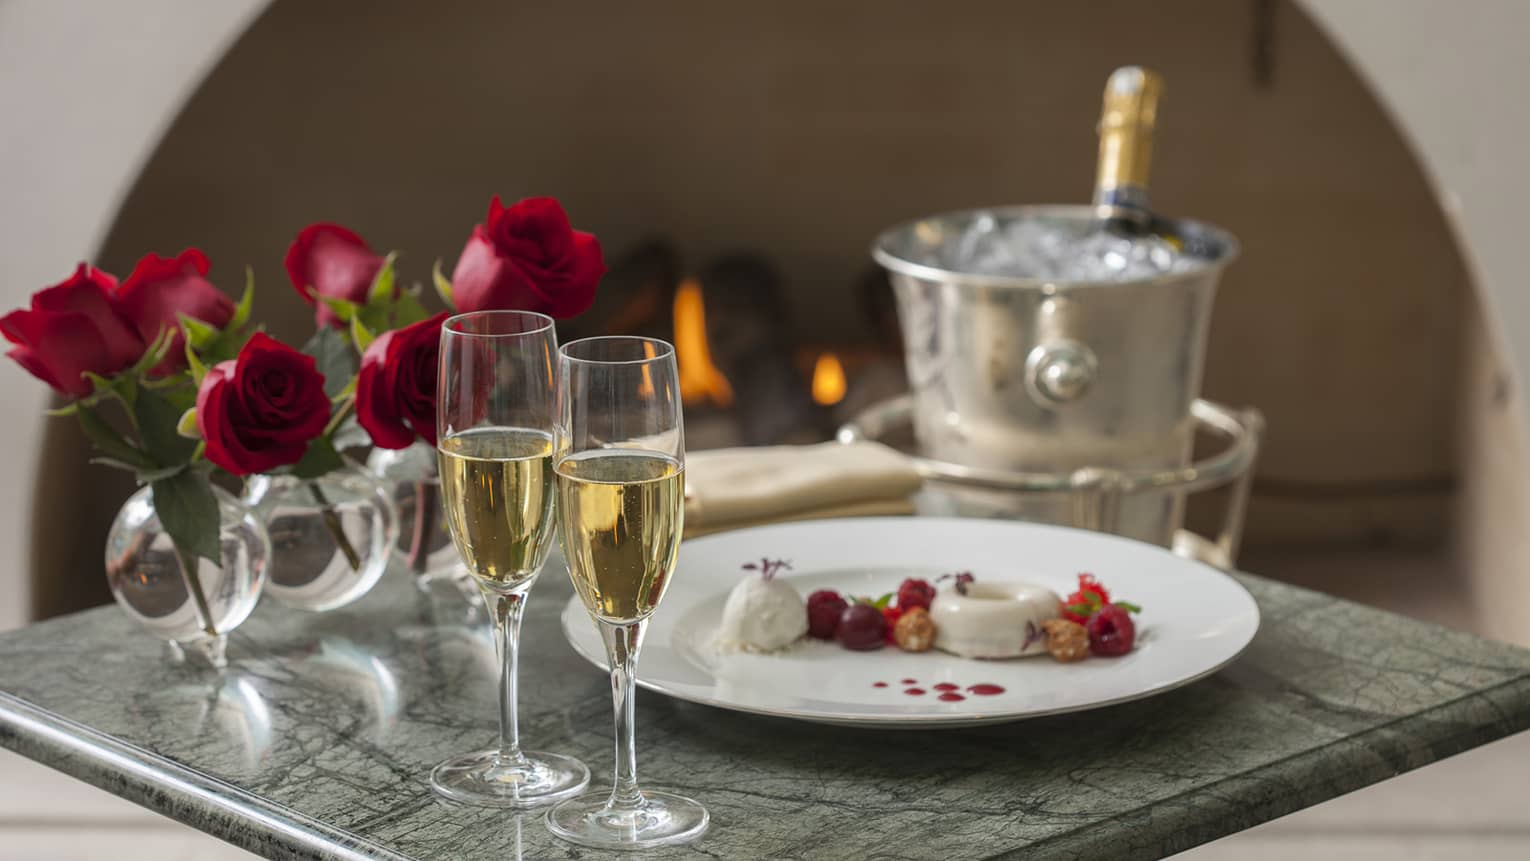 Champagne glasses and bottle on ice, red roses and gourmet dessert on tray